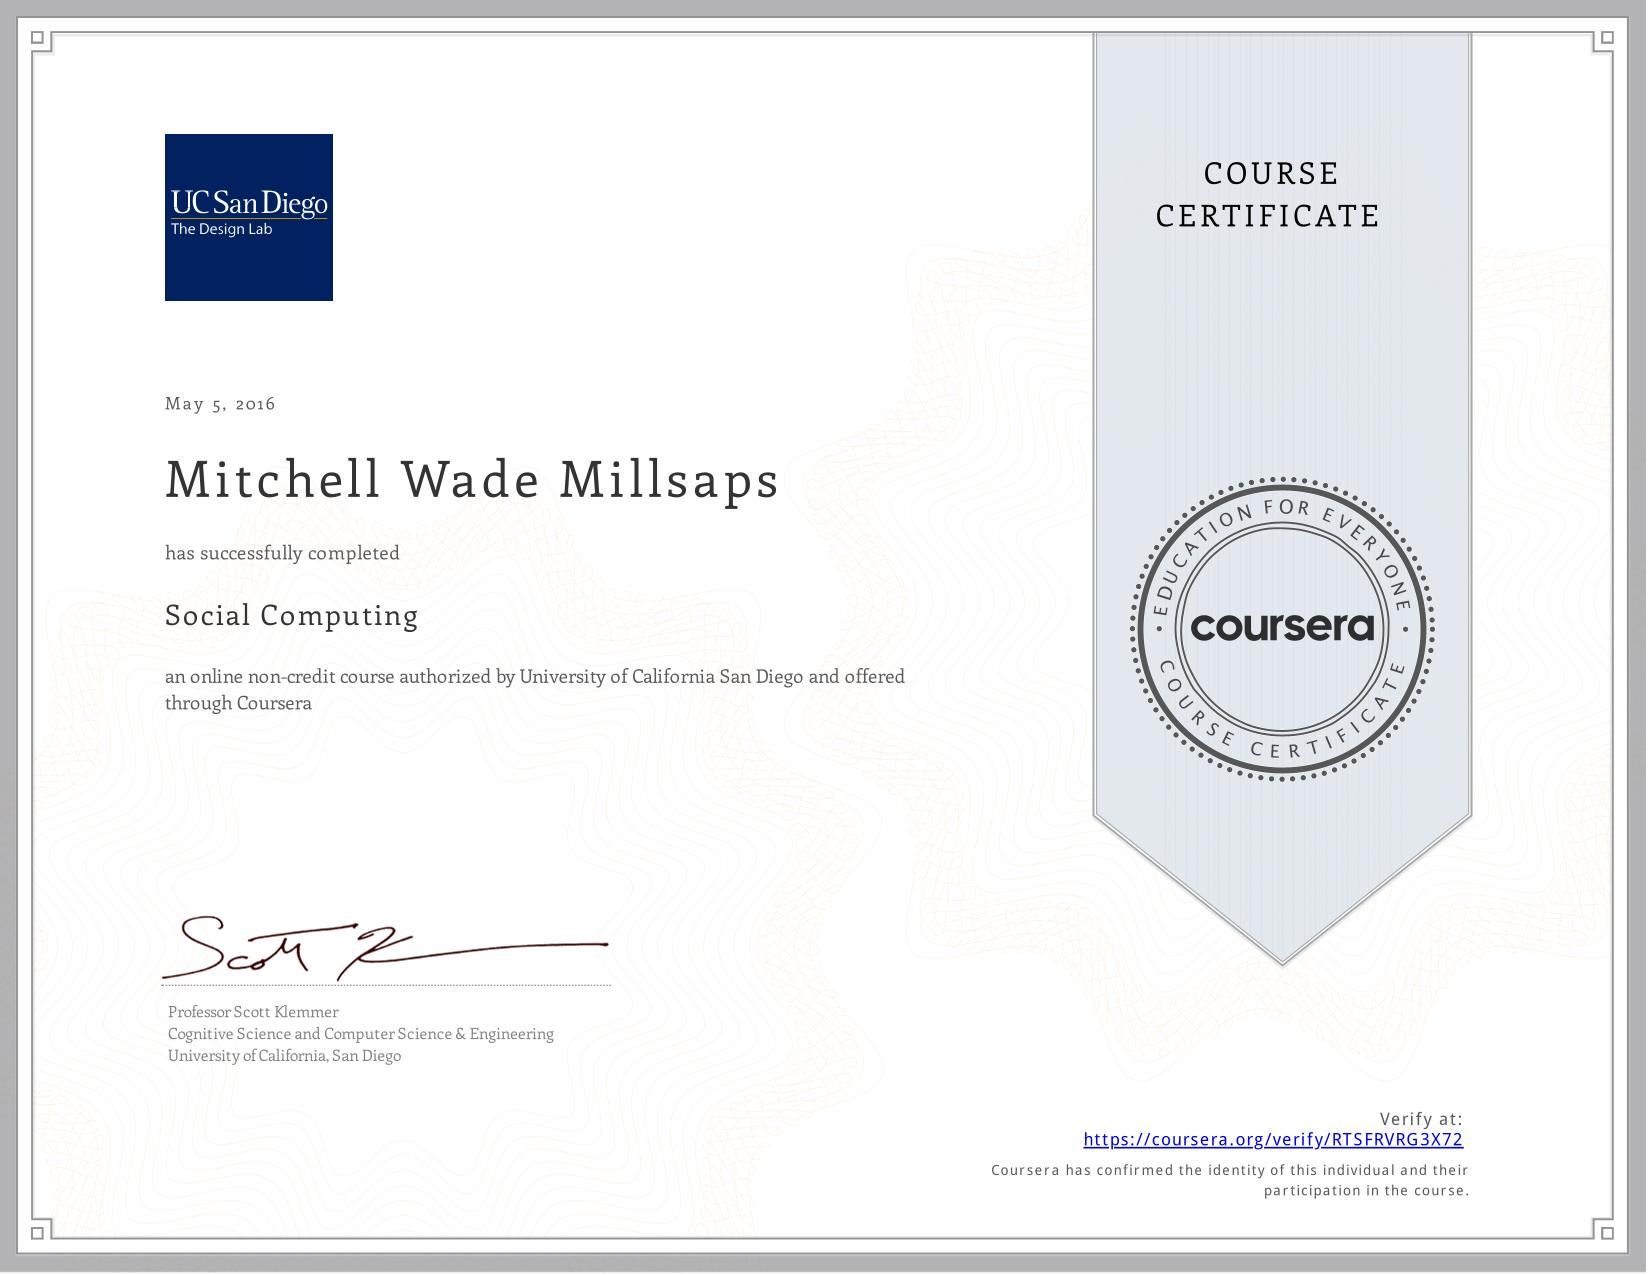 View certificate for Mitchell Wade Millsaps, Social Computing, an online non-credit course authorized by  & University of California San Diego and offered through Coursera